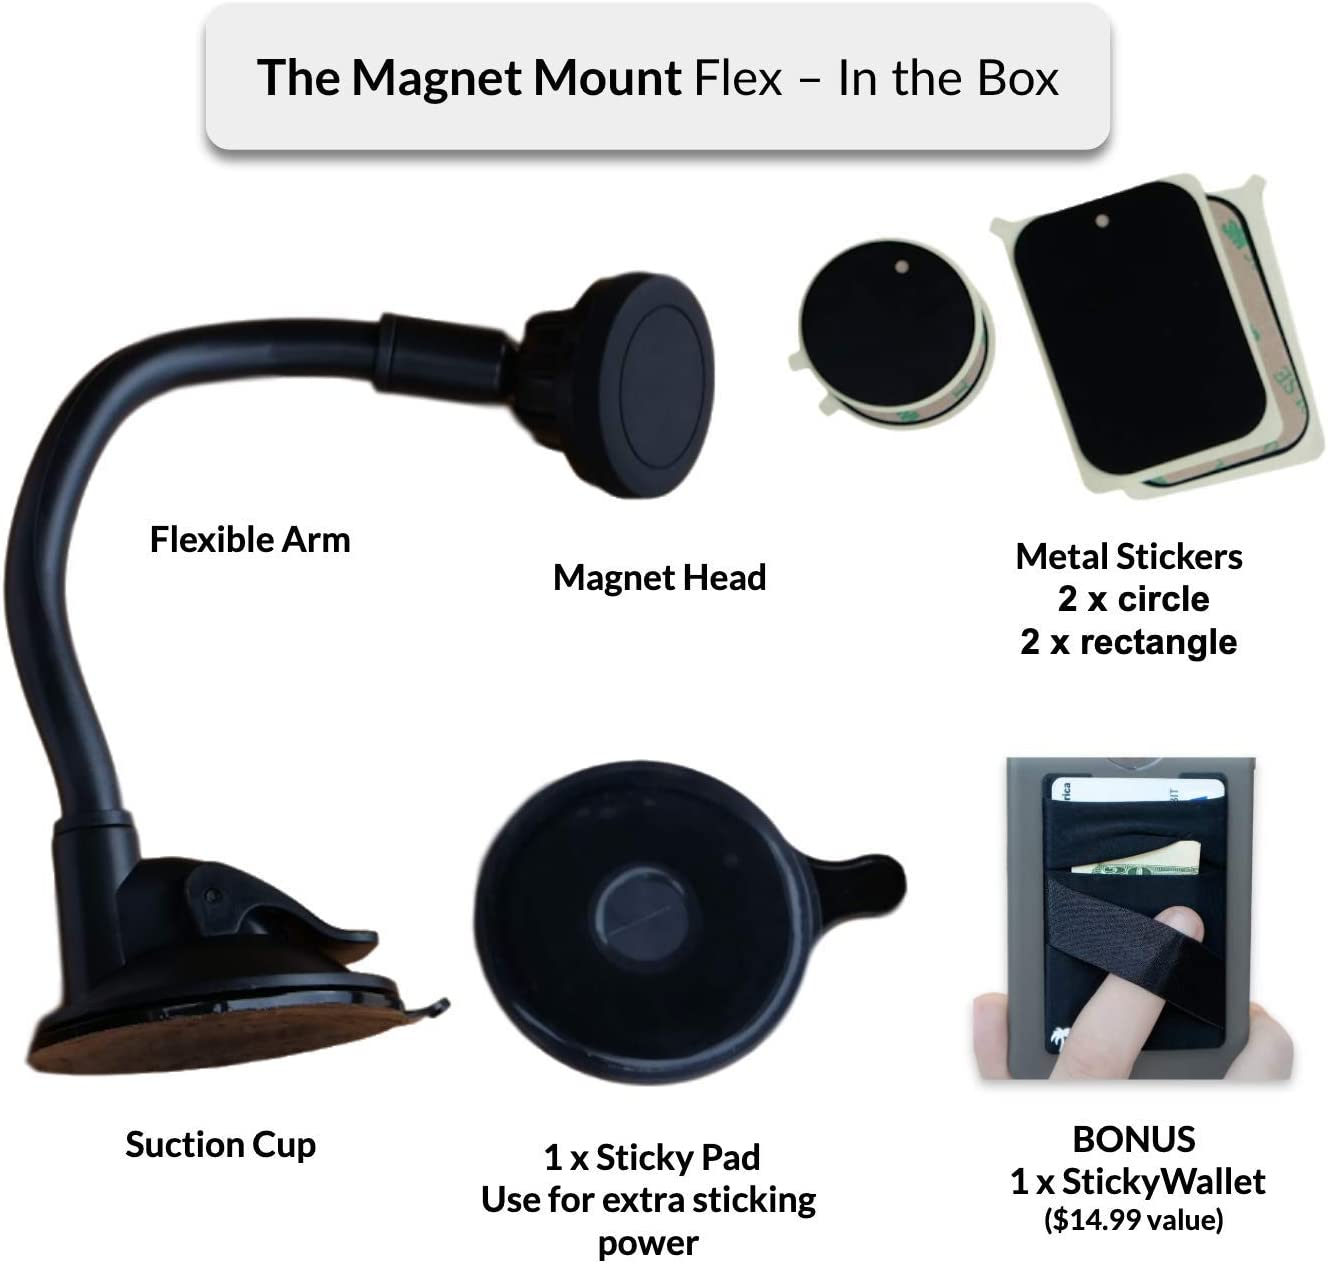 New 2-in-1 Flexible Magnetic Car Mount for Any Phone Universal: iPhone 11 Pro Xs Max X Xr 8 7 6 Plus Samsung S10 S9 Note 10 etc Strong Car Windshield or Dash Suction Cup Flexible Long Arm